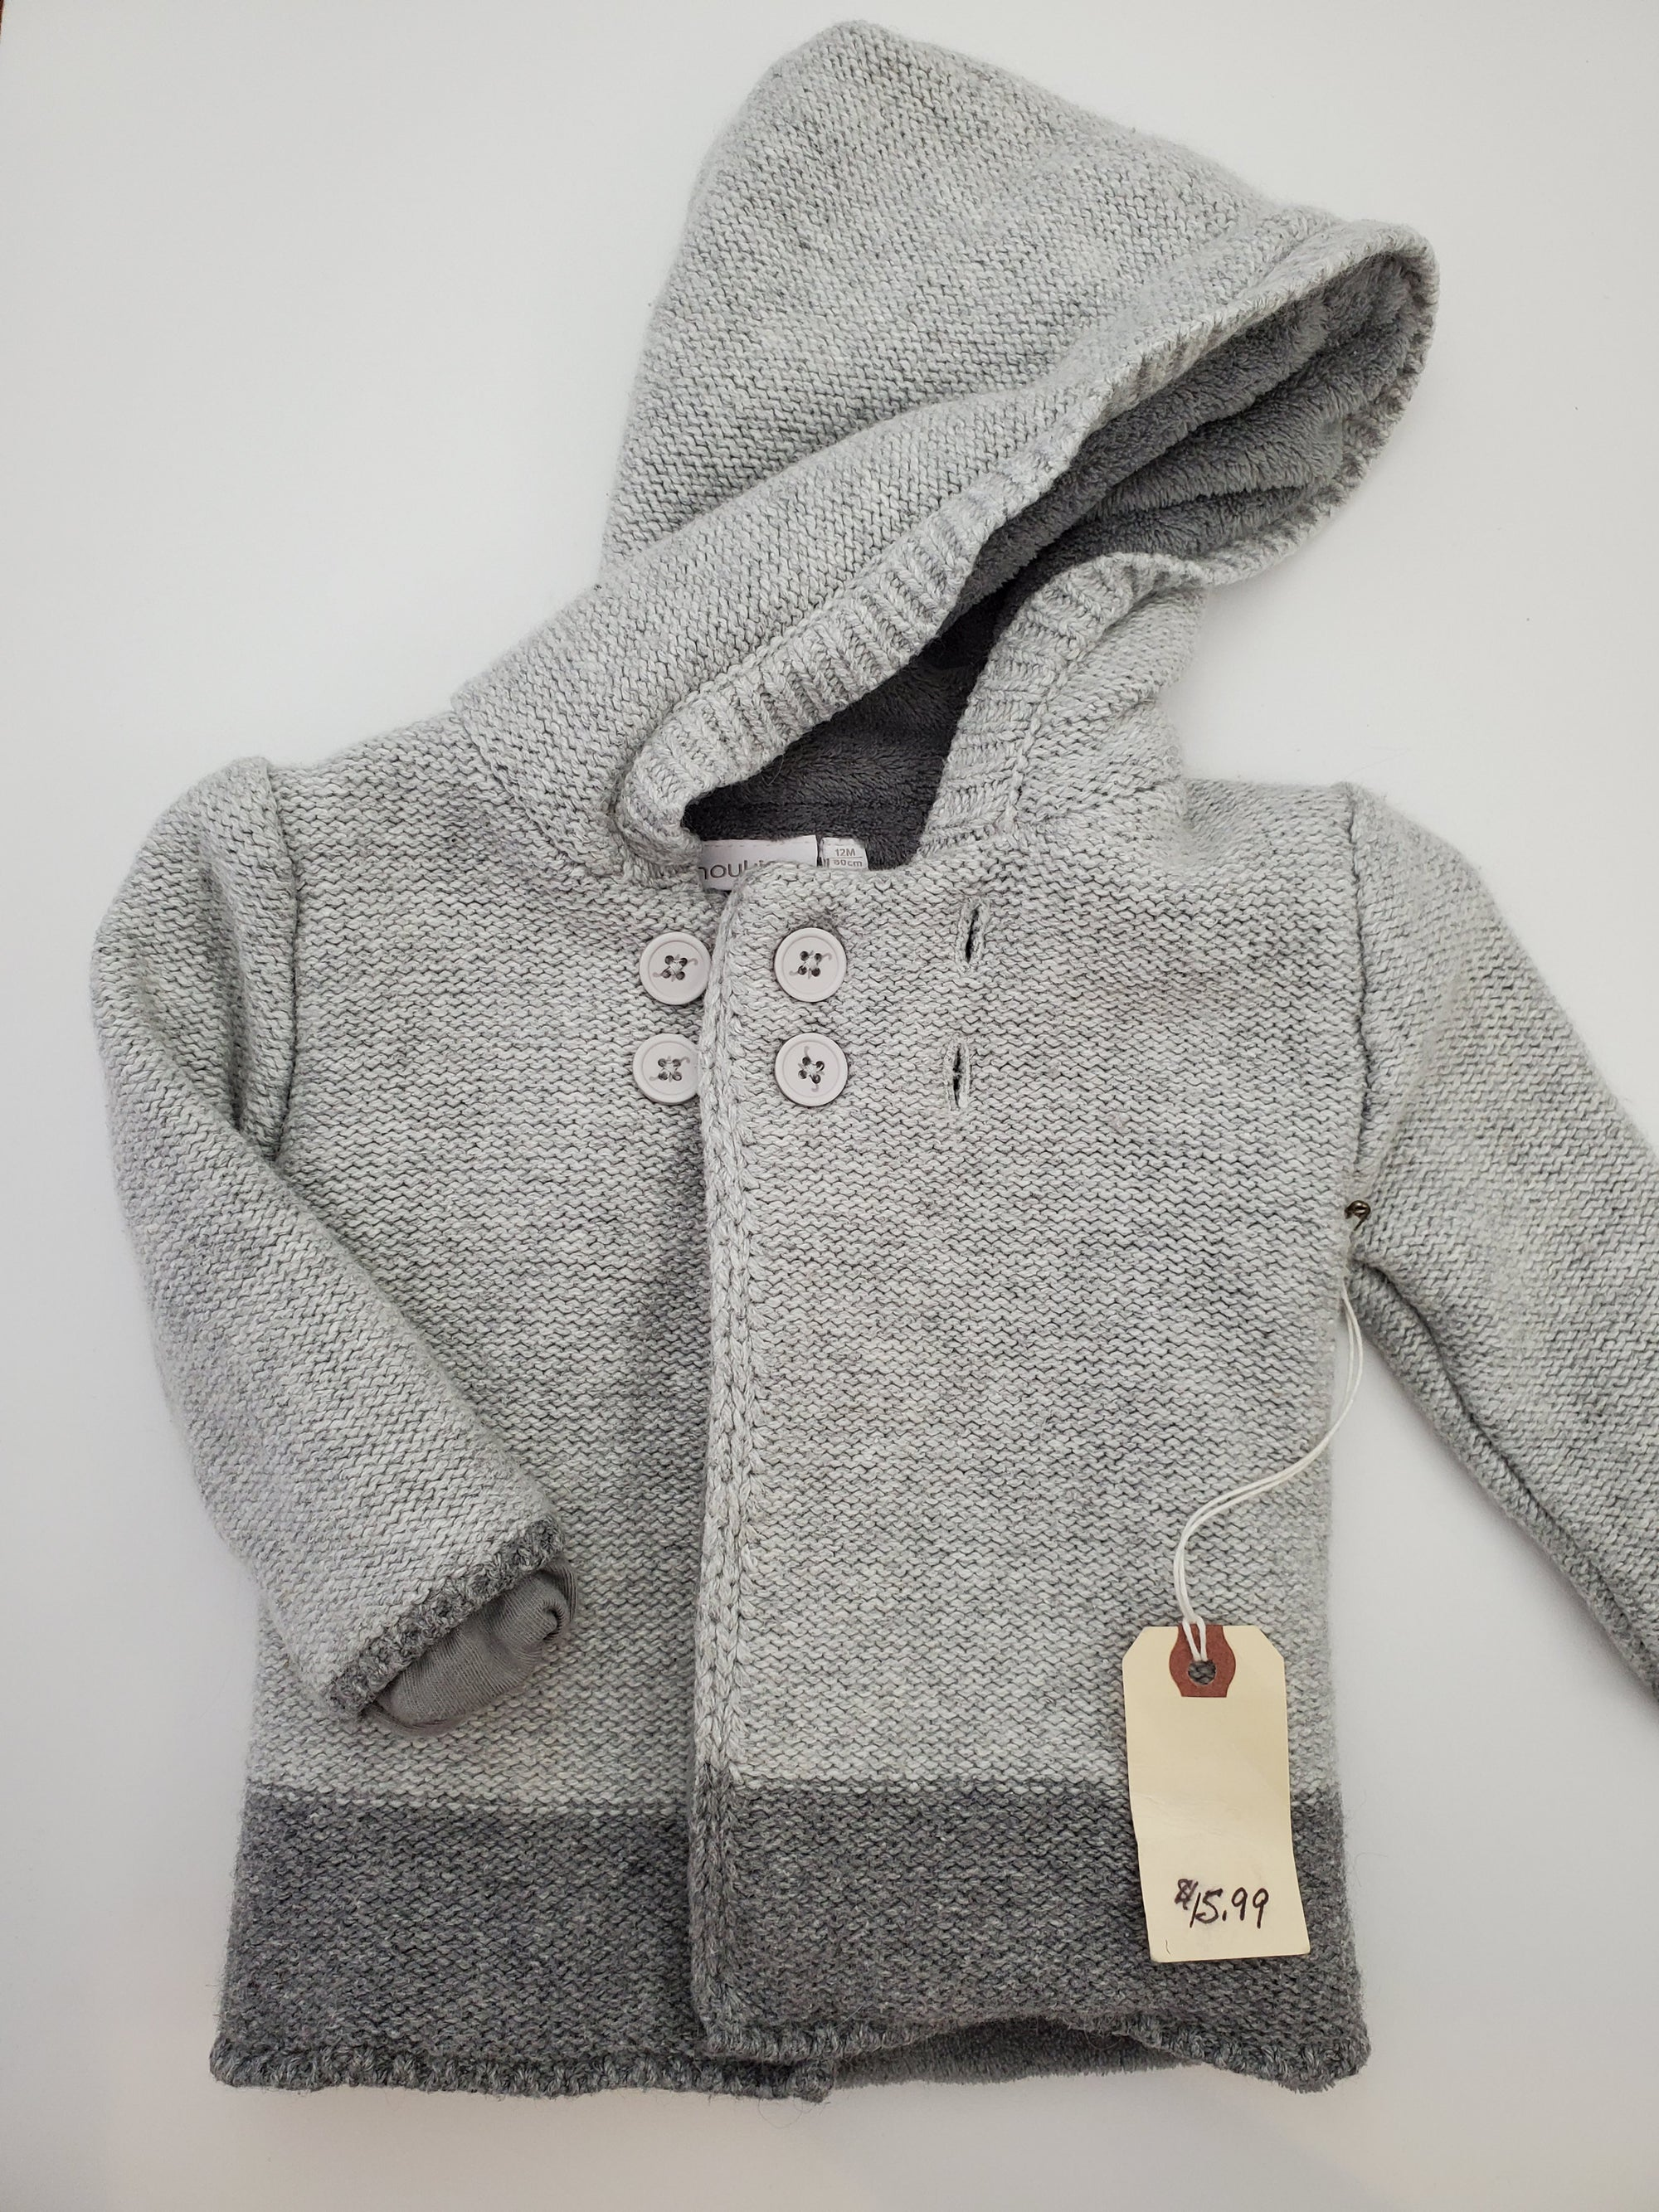 Resale 12 m Noukie's Hooded Sweater - Grey